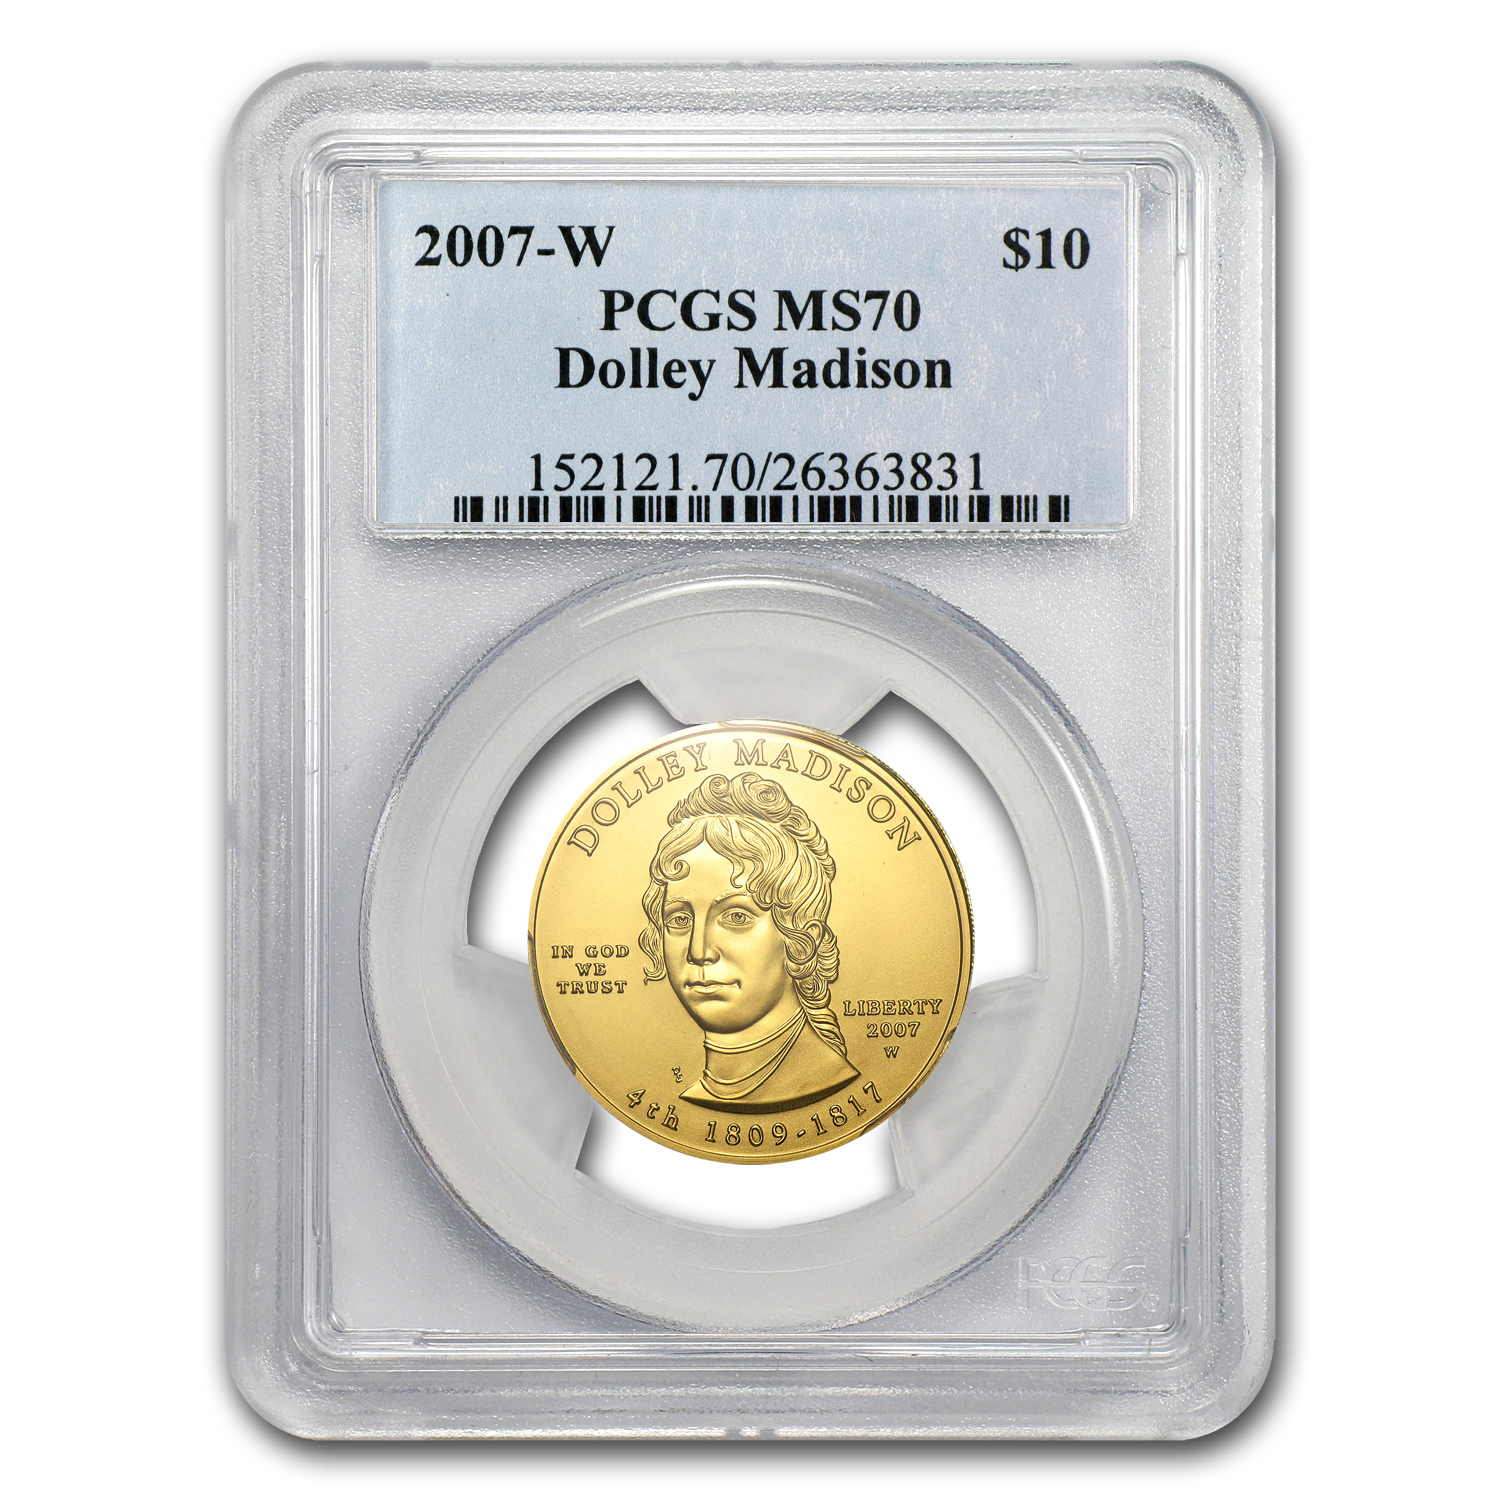 2007-W 1/2 oz Gold Dolley Madison MS-70 PCGS